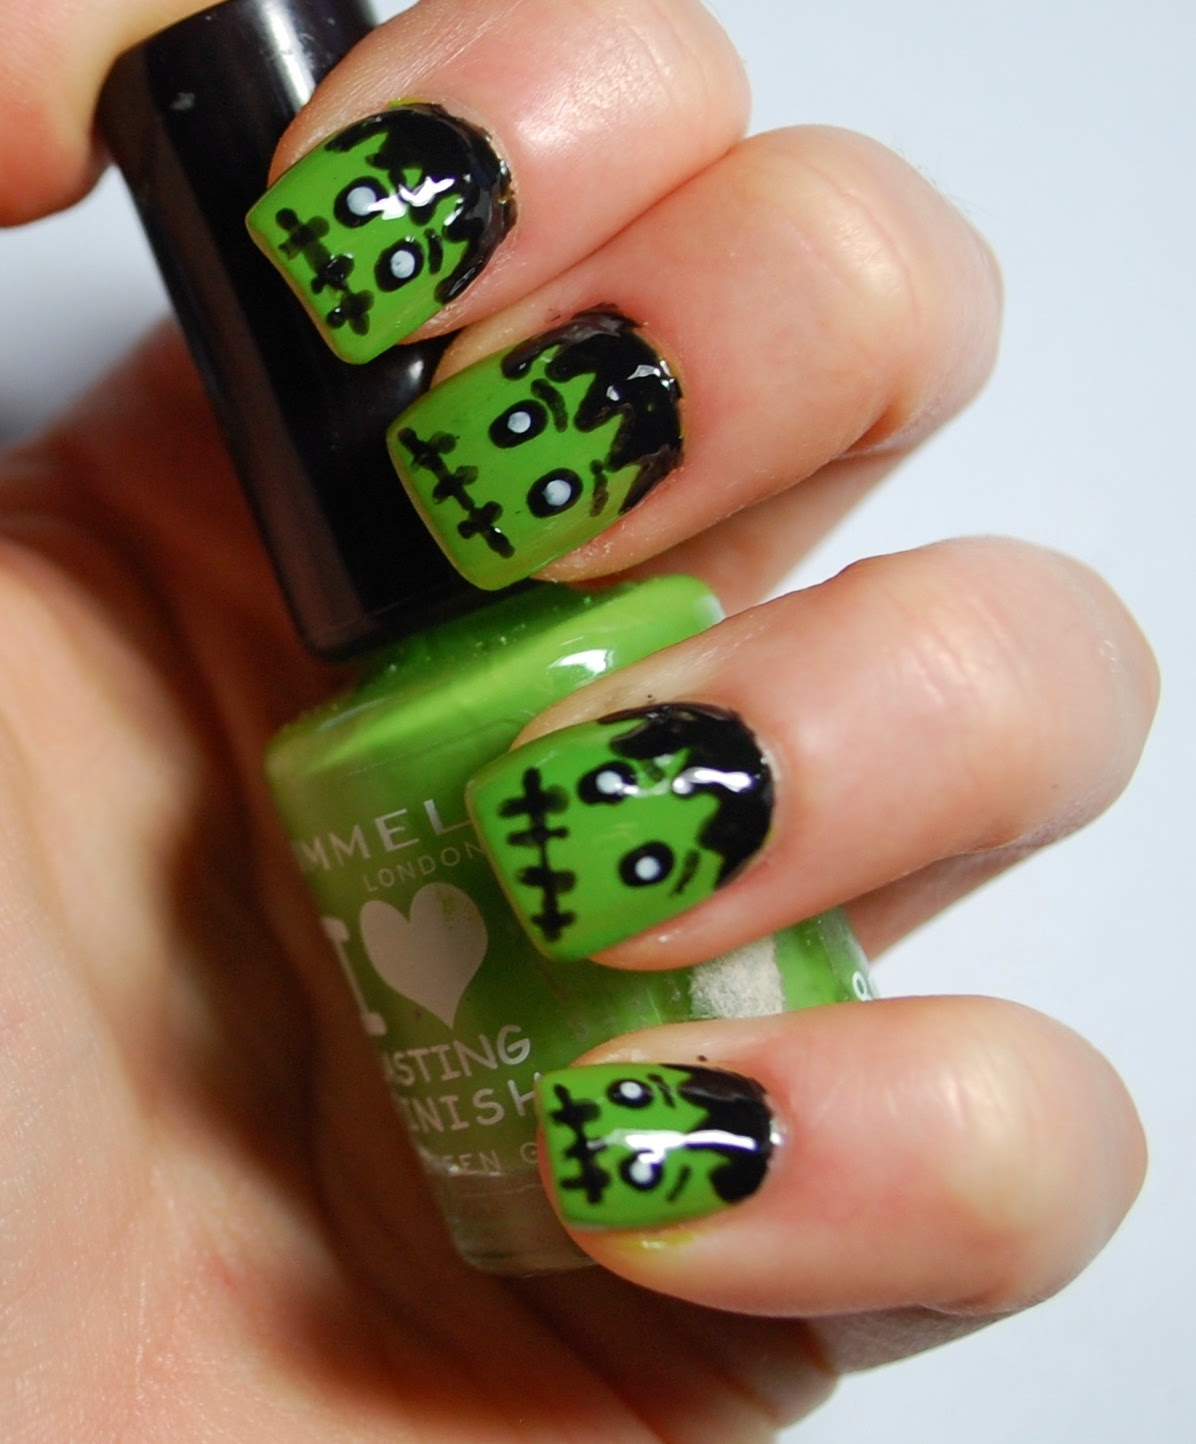 In samazement halloween frankenstein nail art halloween frankenstein nail art prinsesfo Gallery